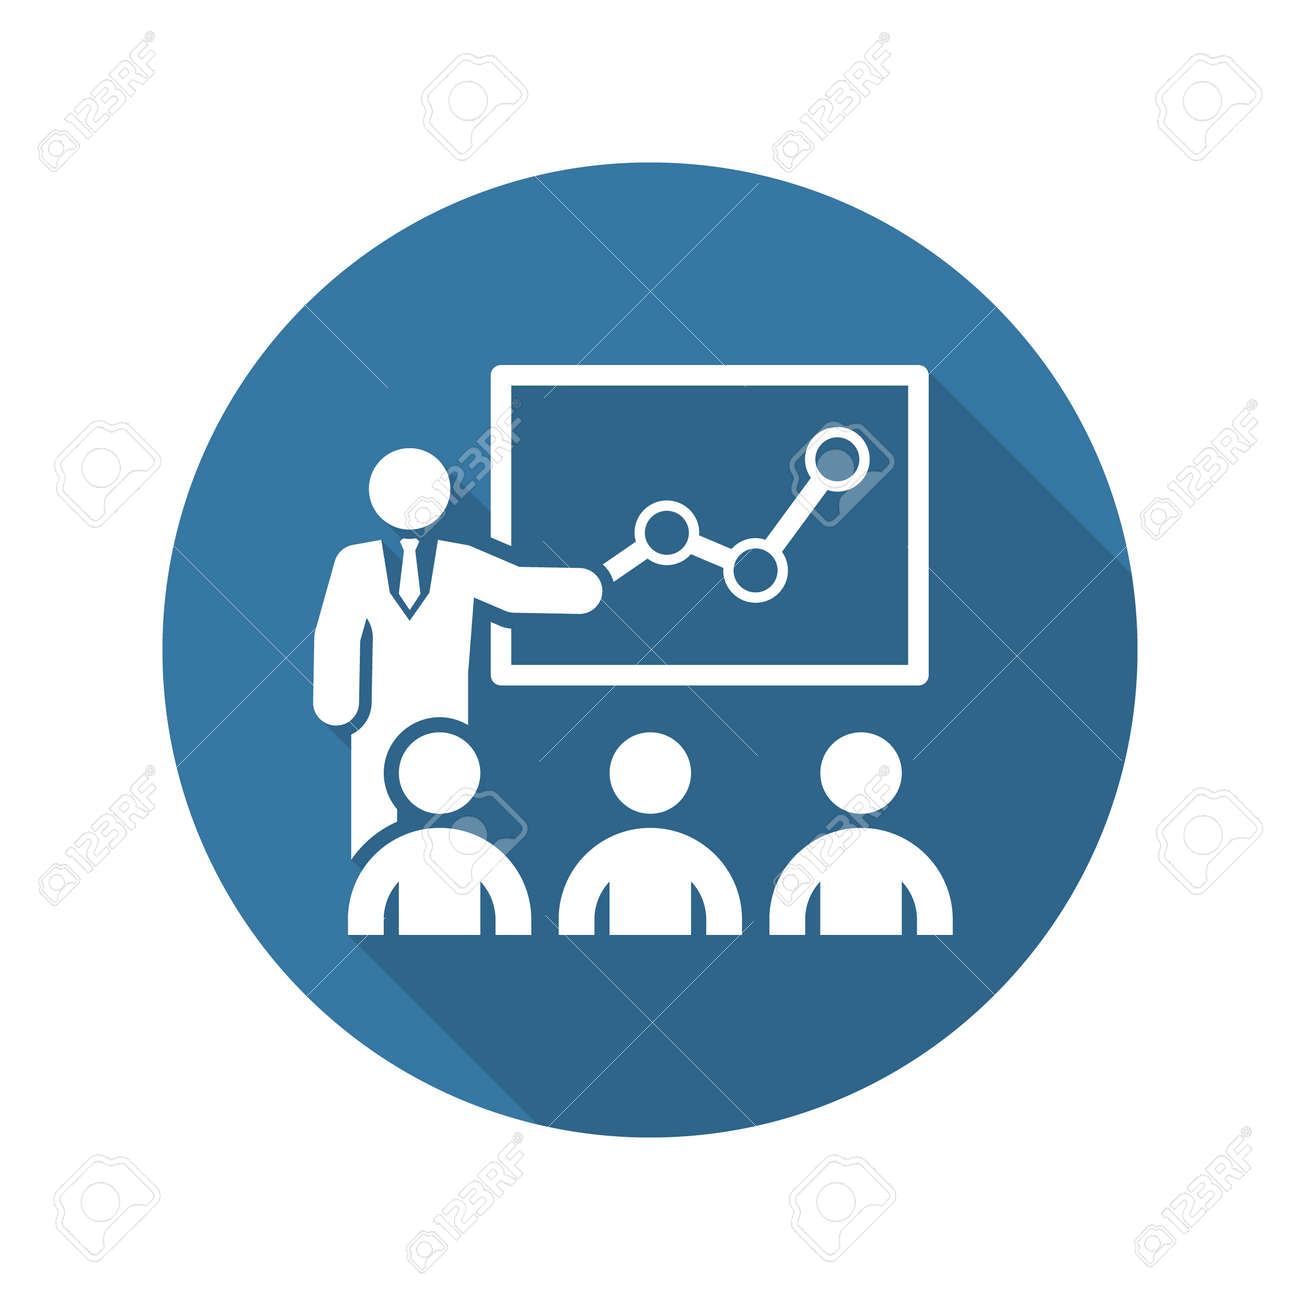 Training Icon. Business Concept. Flat Design. Isolated Illustration. Long Shadow. - 45248768